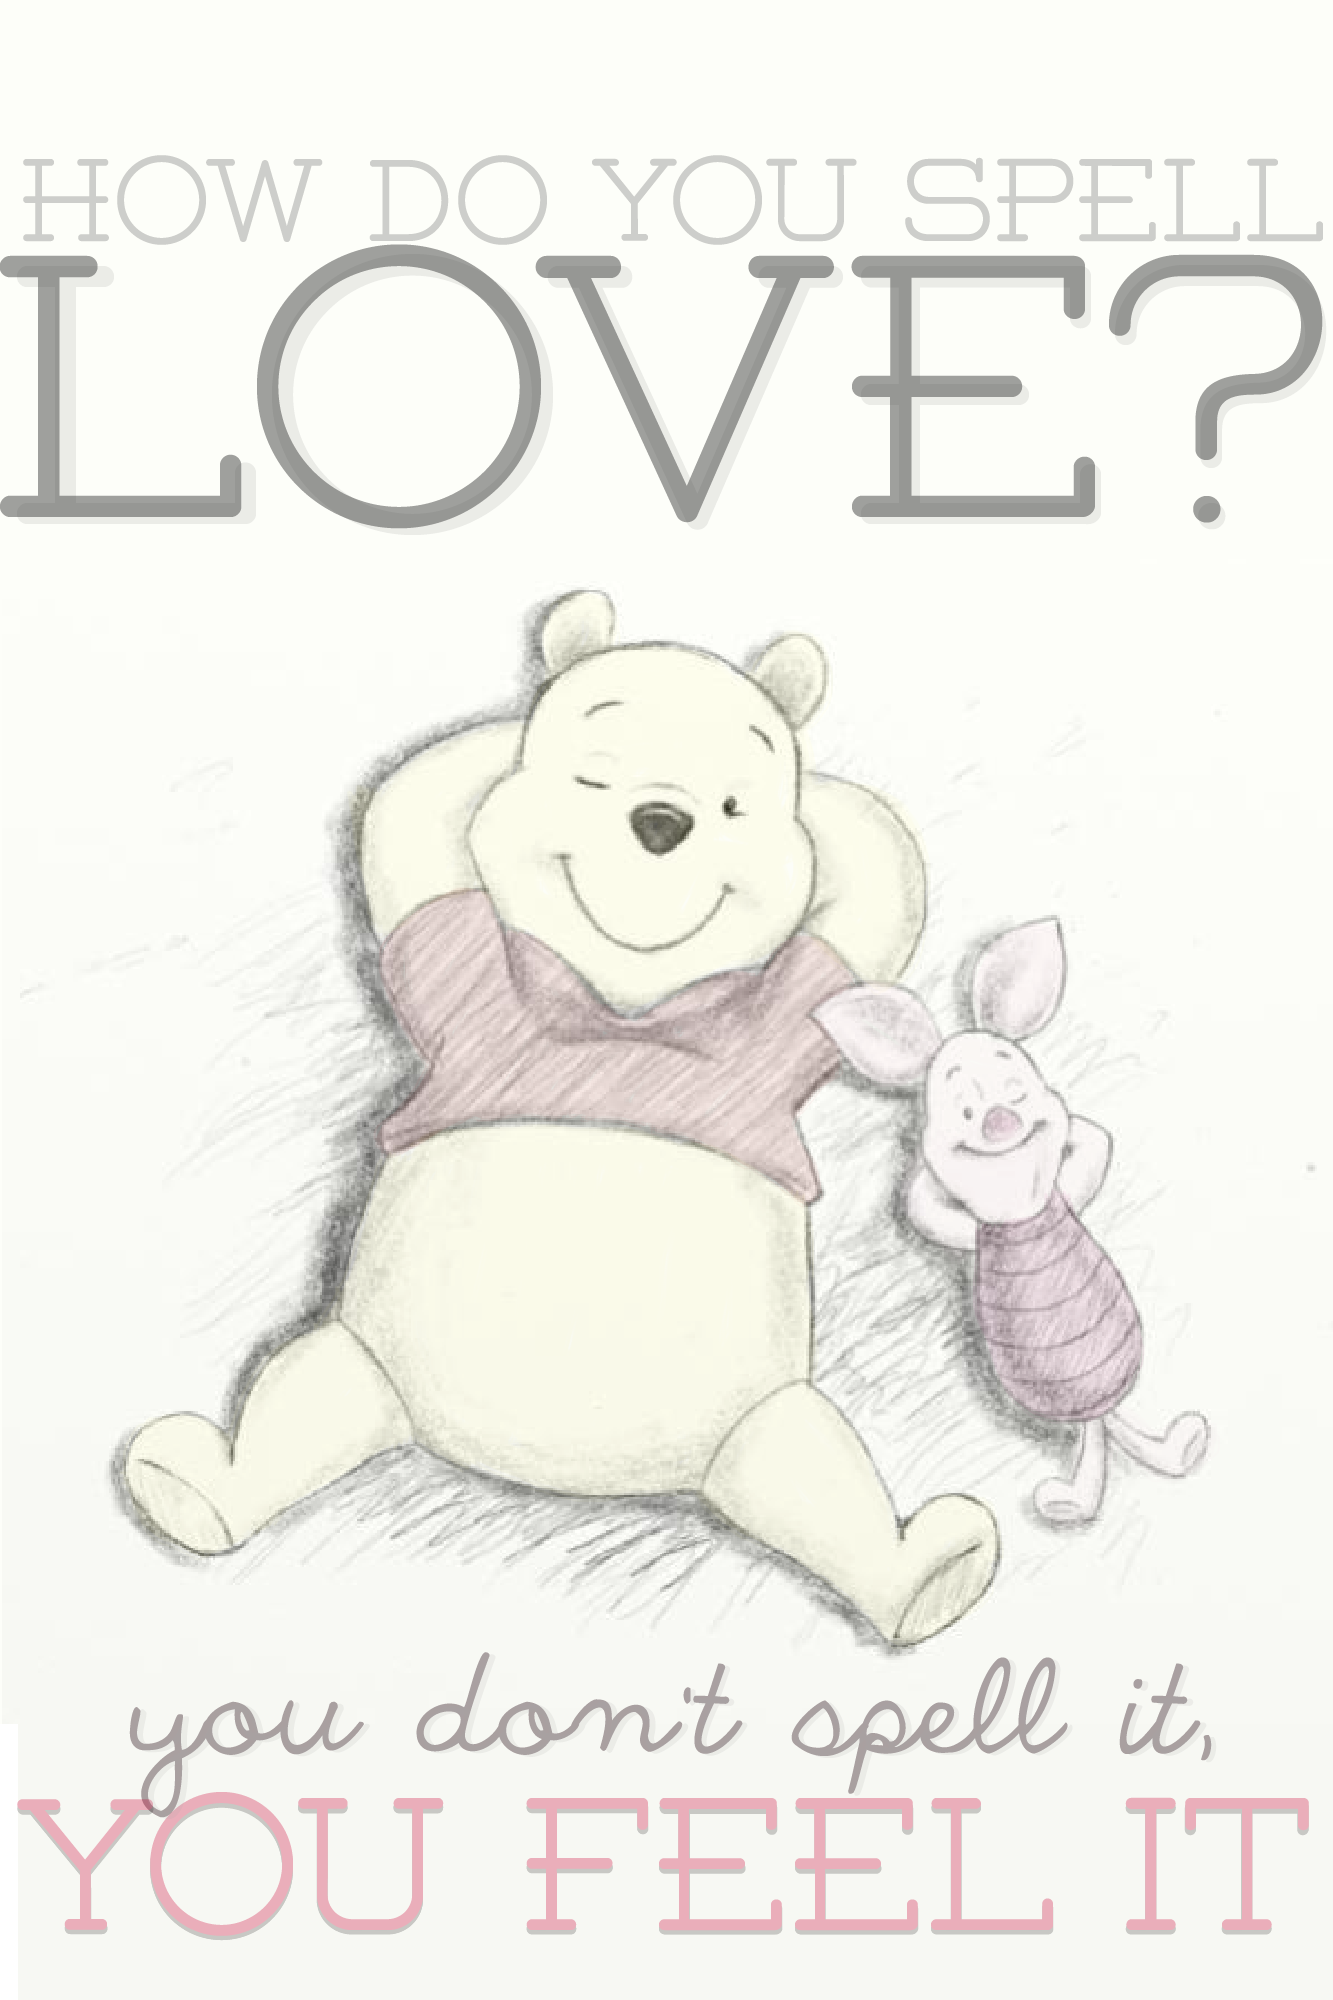 piglet and pooh relationship test